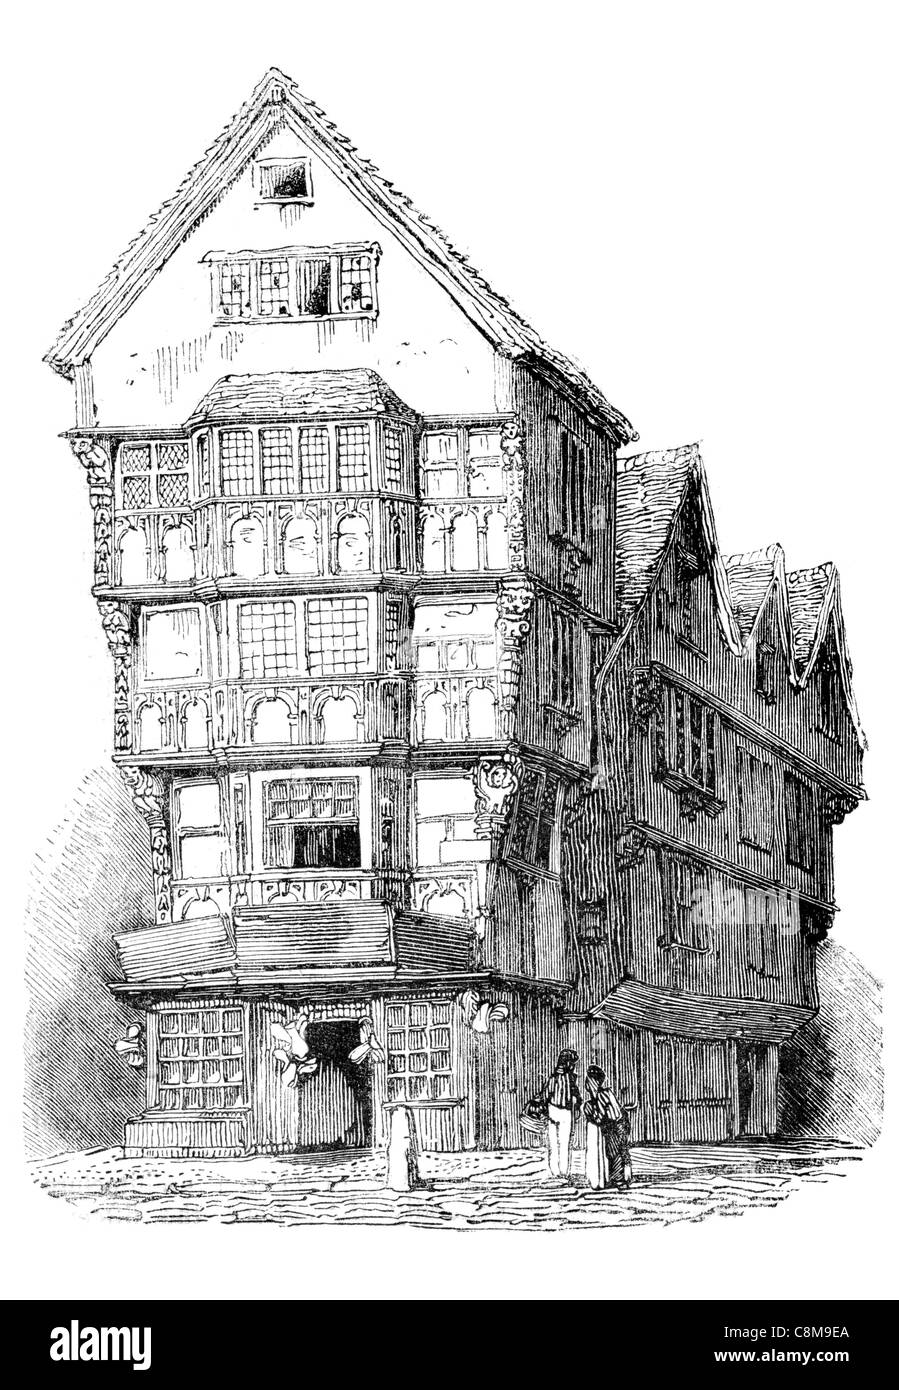 Street Architecture 16th Century half timber timbered home ...